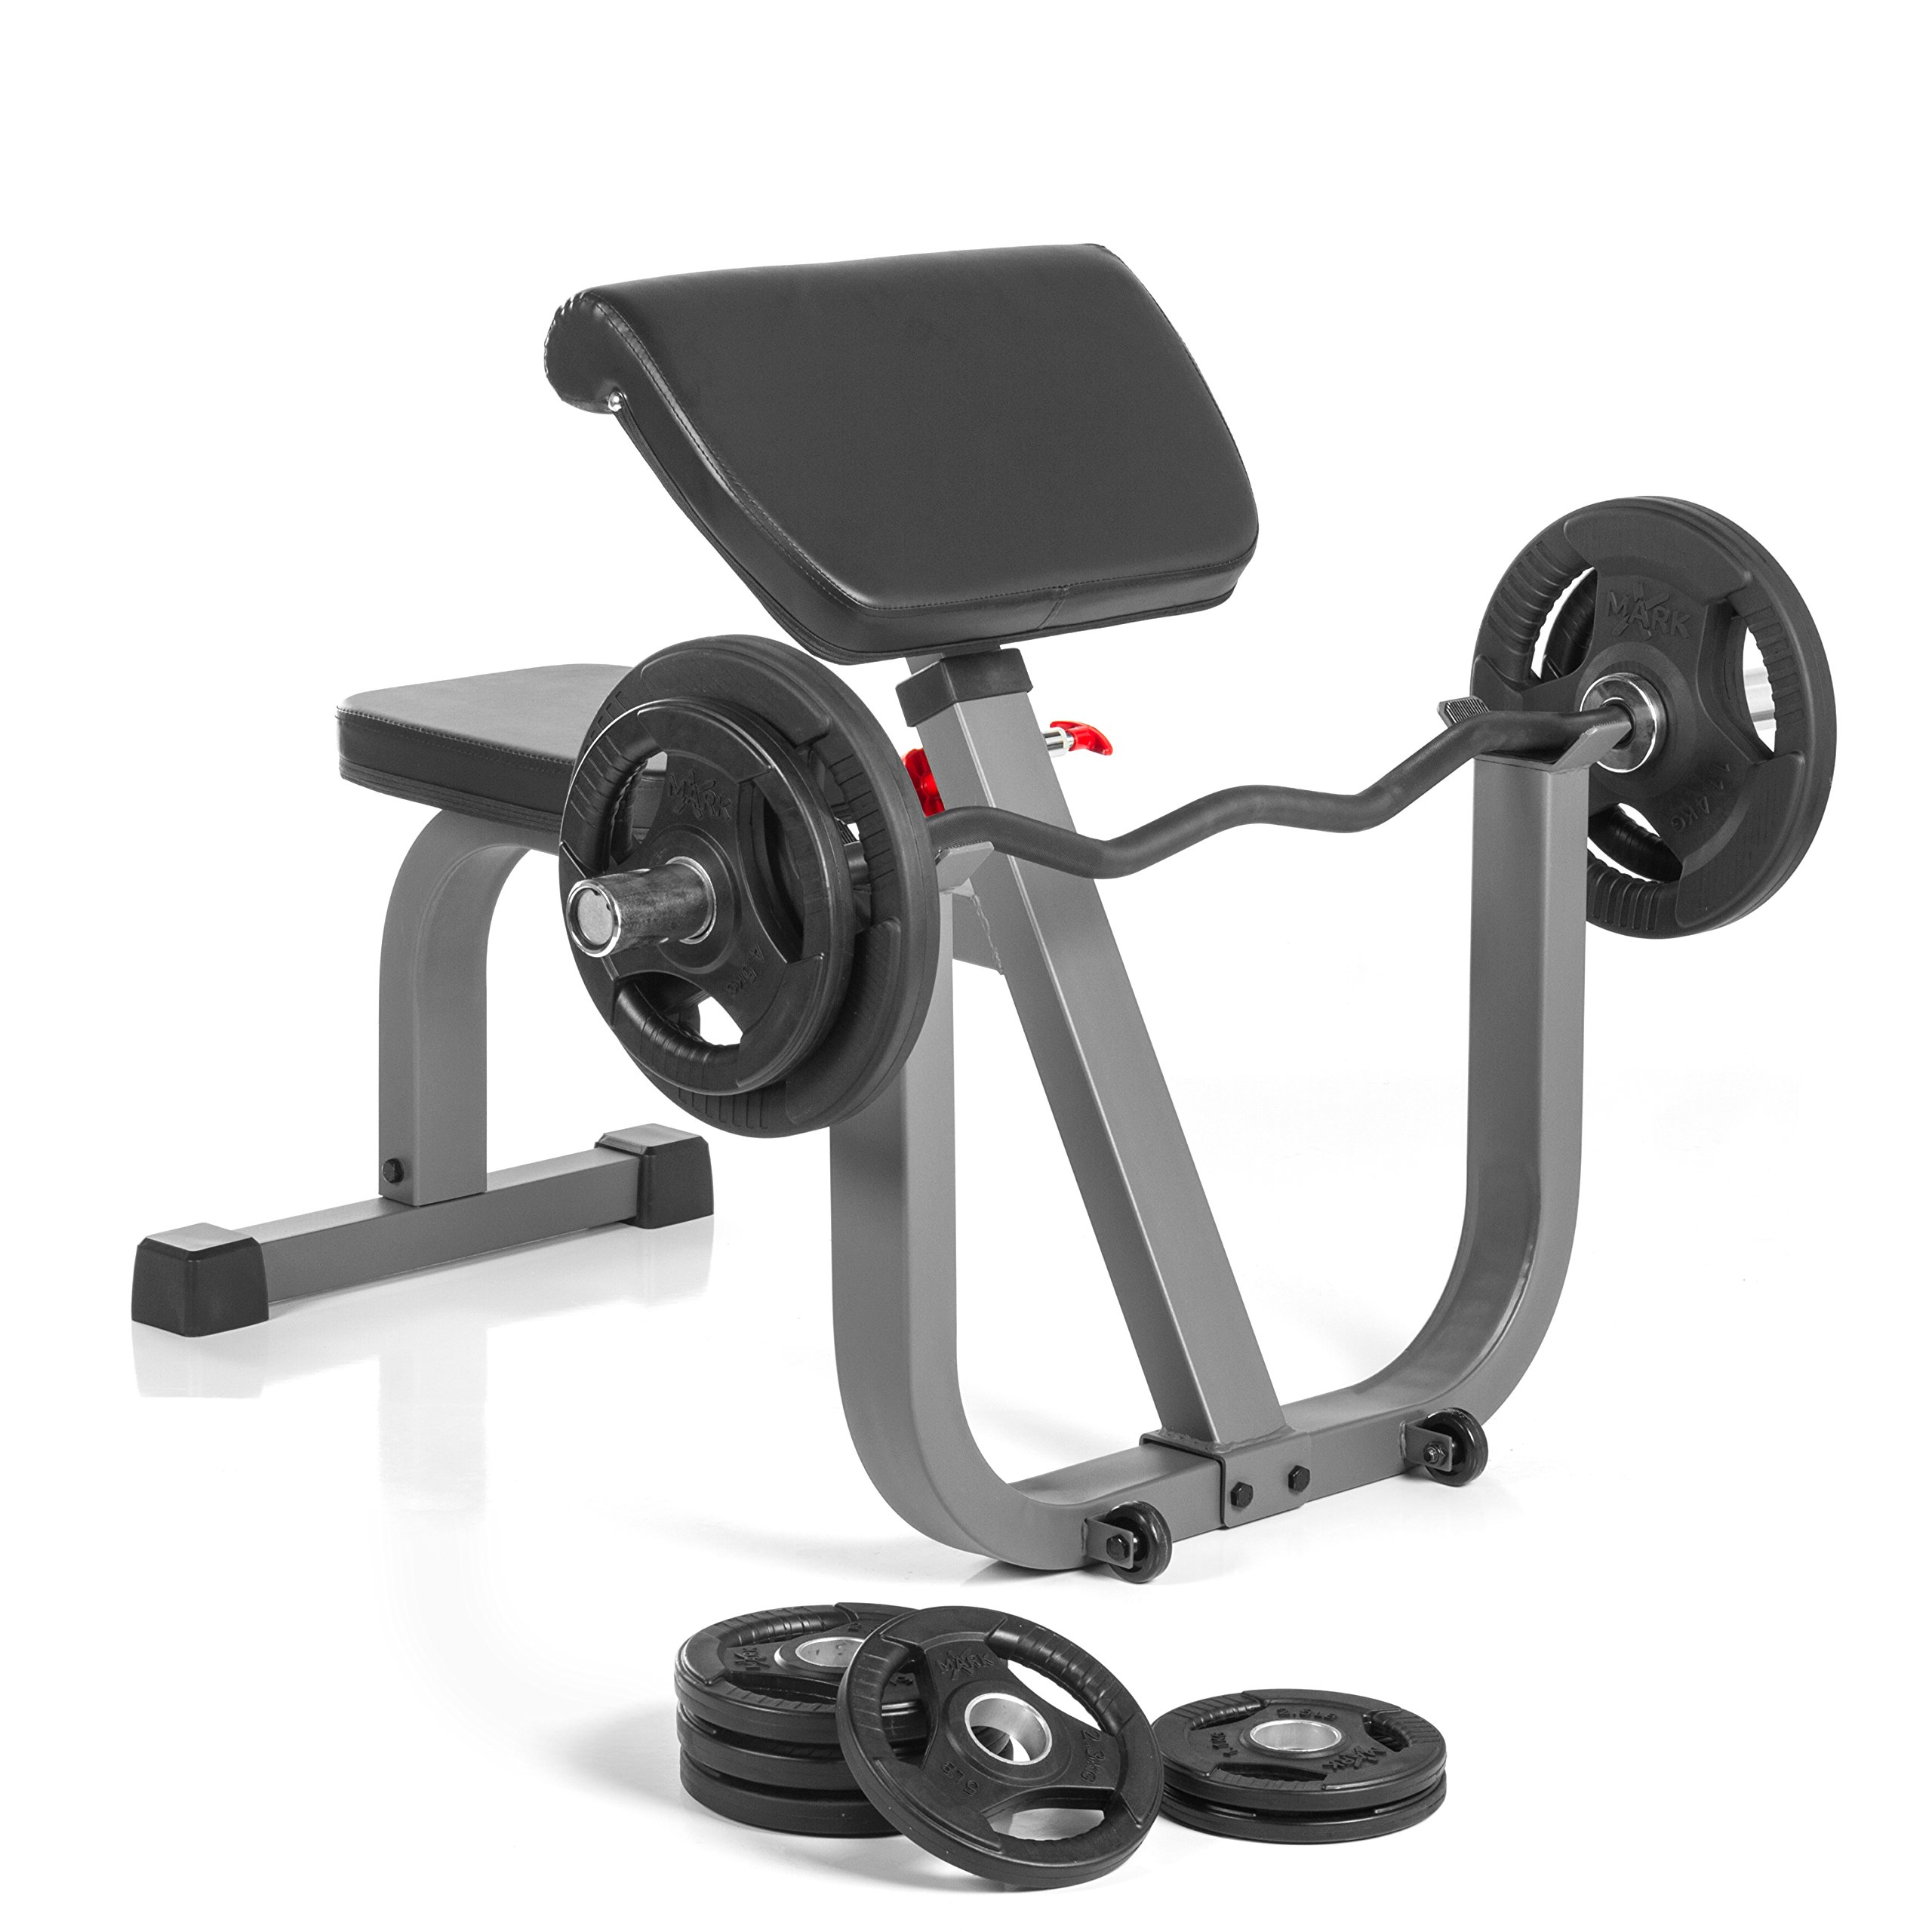 XMark ARMageddon Preacher Curl Package includes Plate Weights, Curl Bar, and Seated Preacher Curl Adjustable Bench.